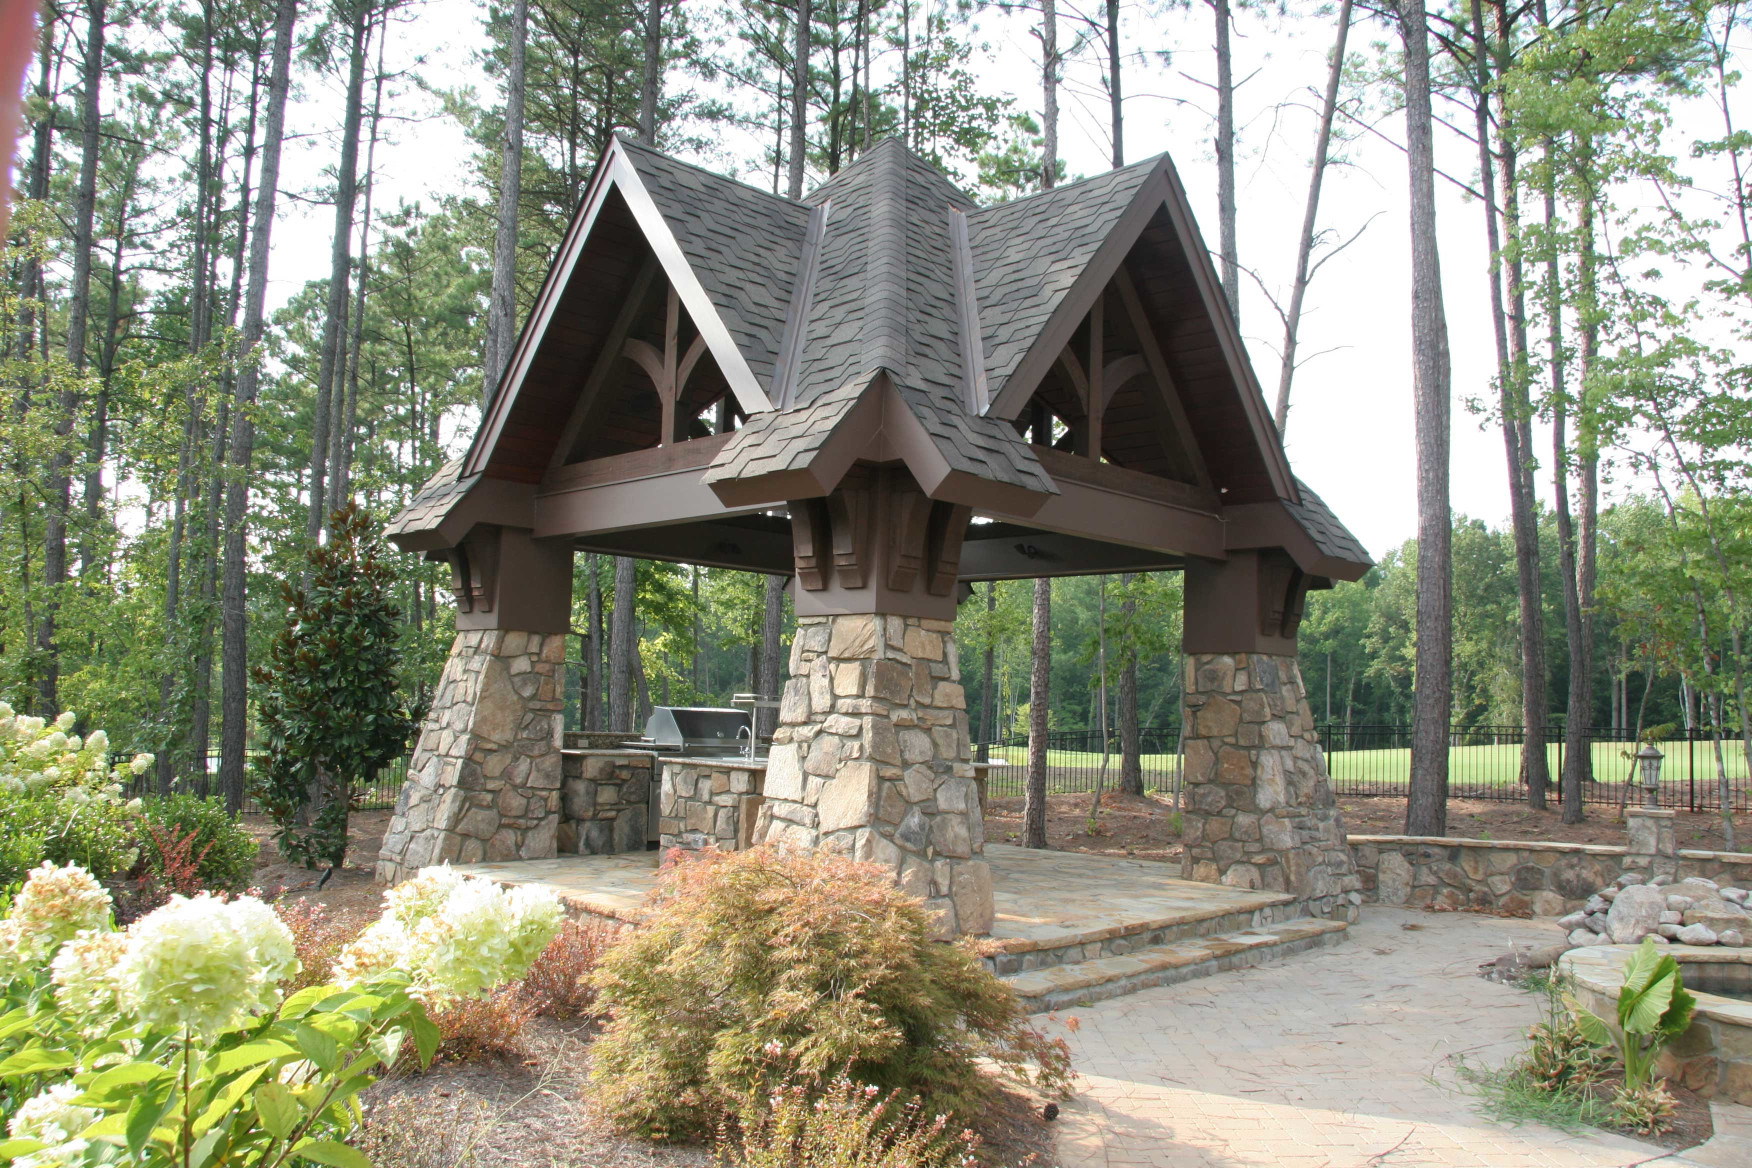 The wood brackets, gable trusses, and wood beams on this gazebo create a breathtaking outdoor living area.